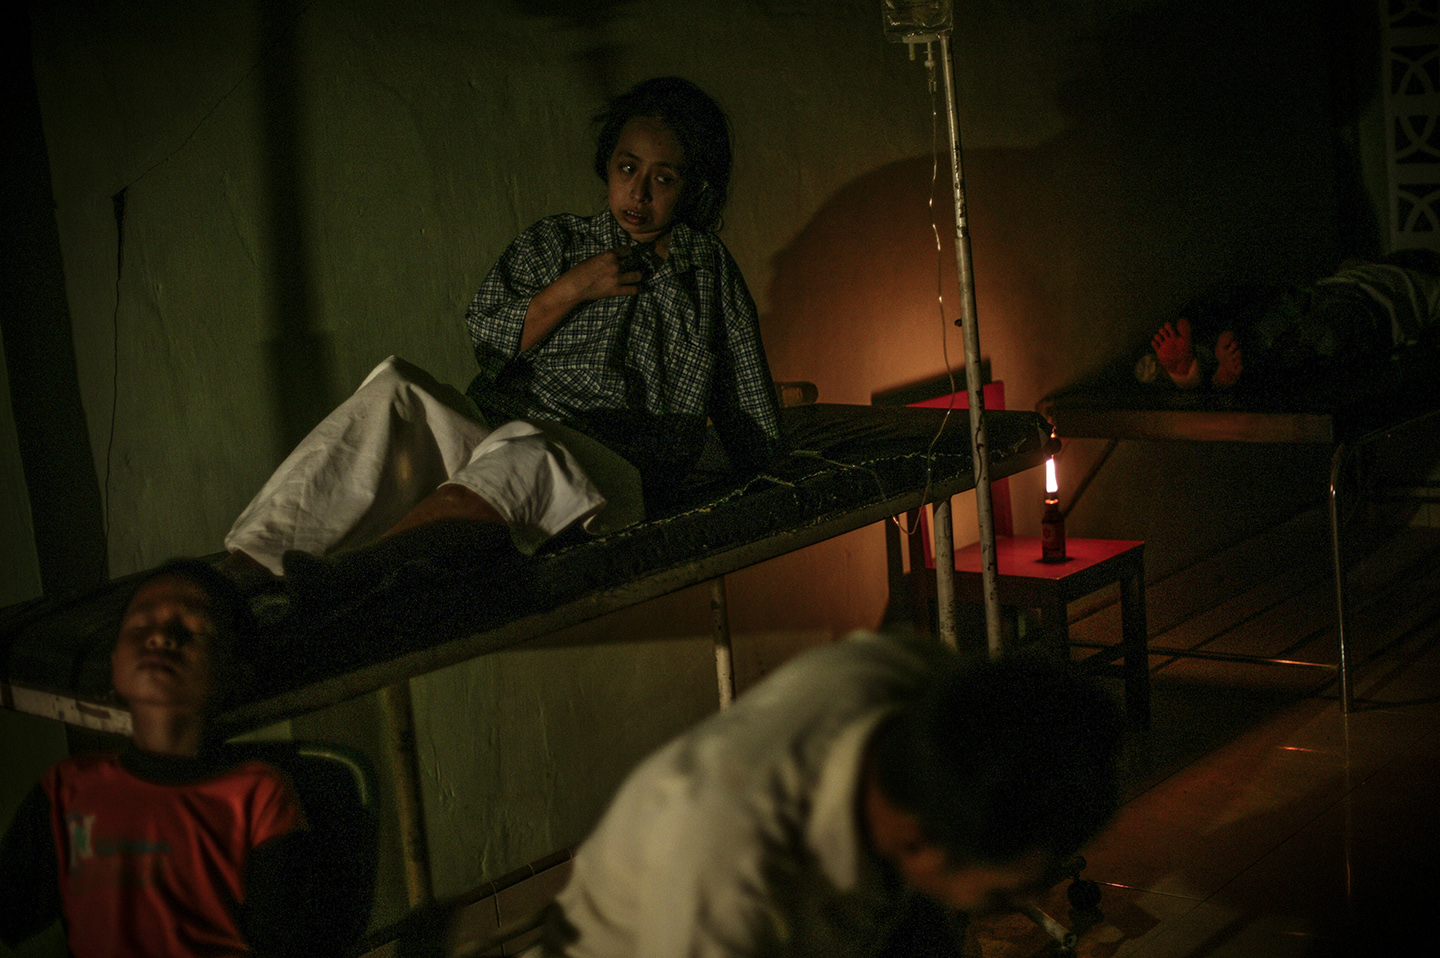 Injured survivors by candlelight at the city's local hospital. The hospital ran without electricity for the first three days after the earthquake. Most of the hospital rooms were destroyed so patients were treated in the lobby area.